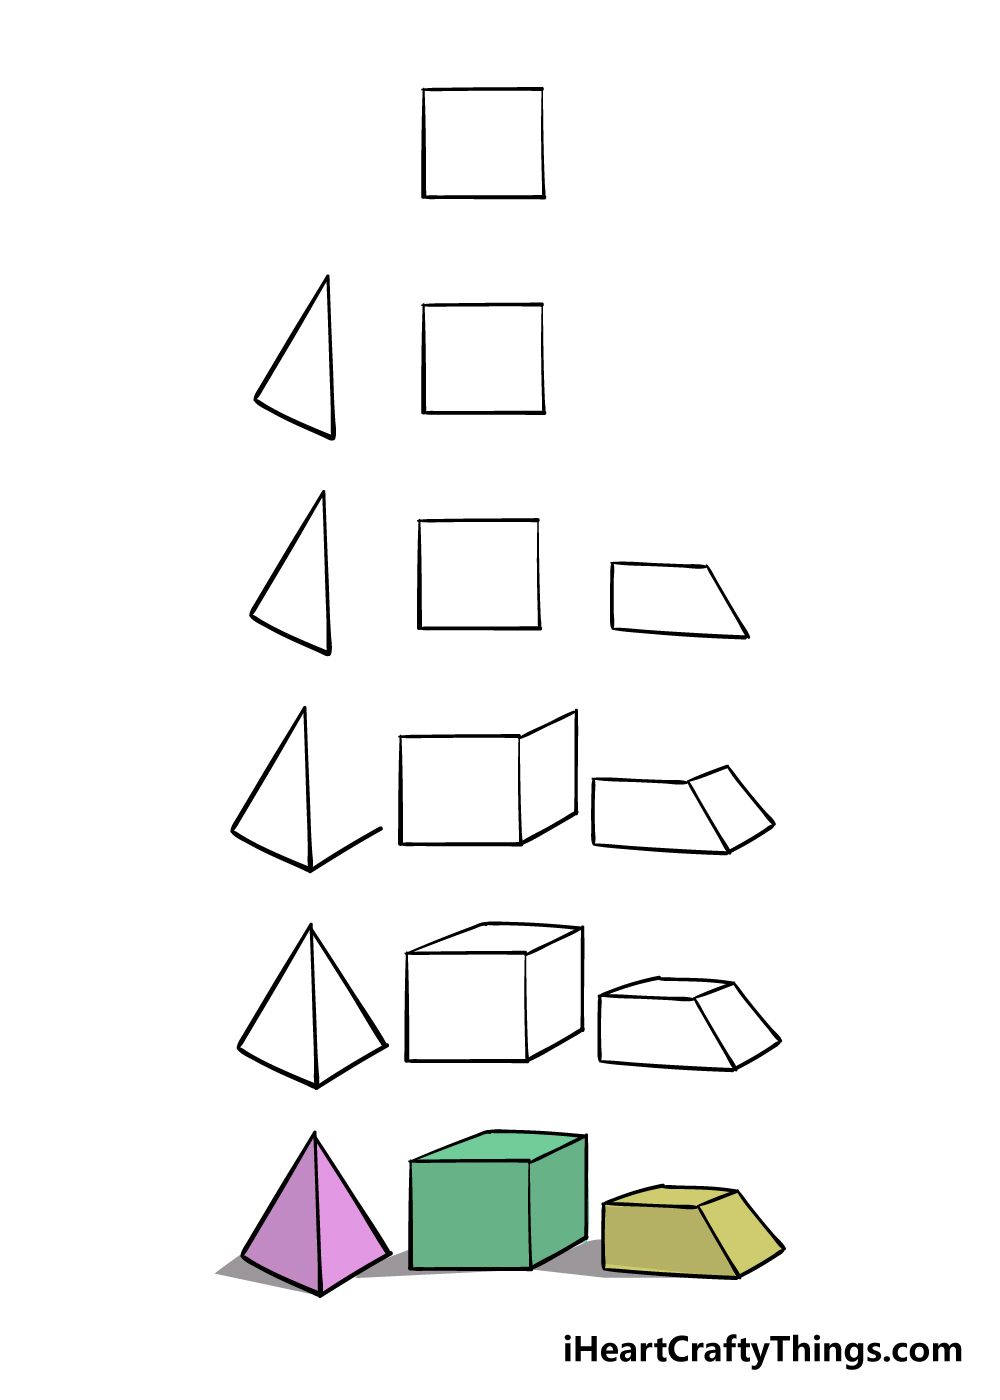 how to draw 3D shapes in 6 steps